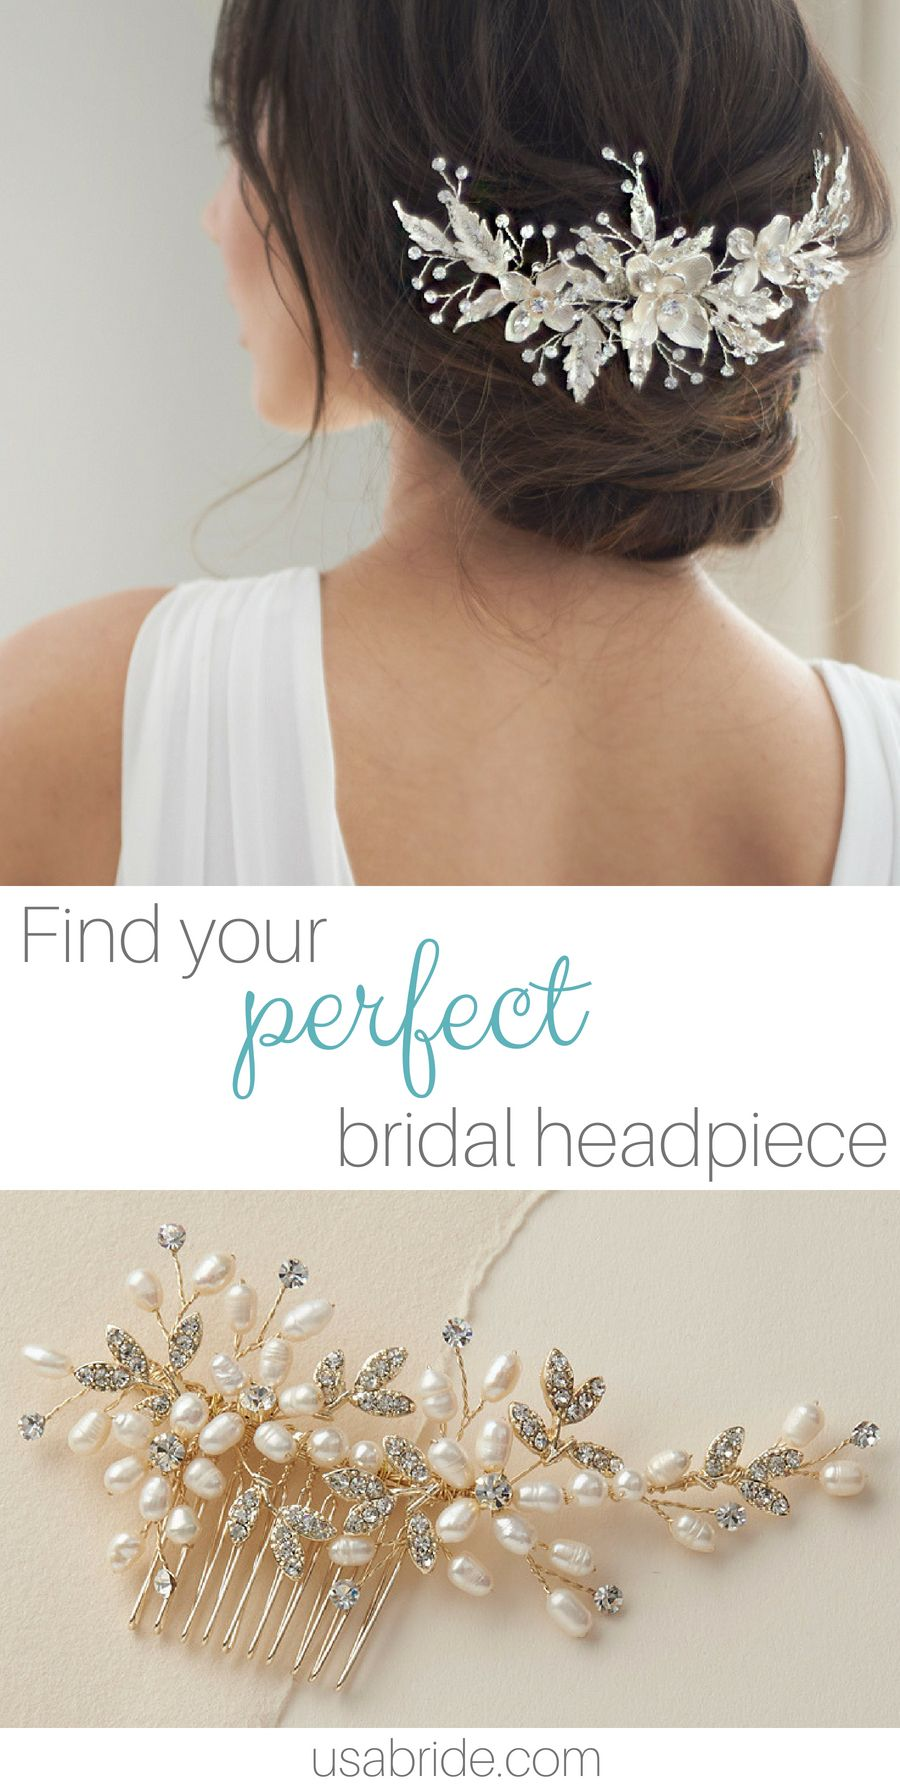 shop bridal hair combs, hair pins and back pieces for your